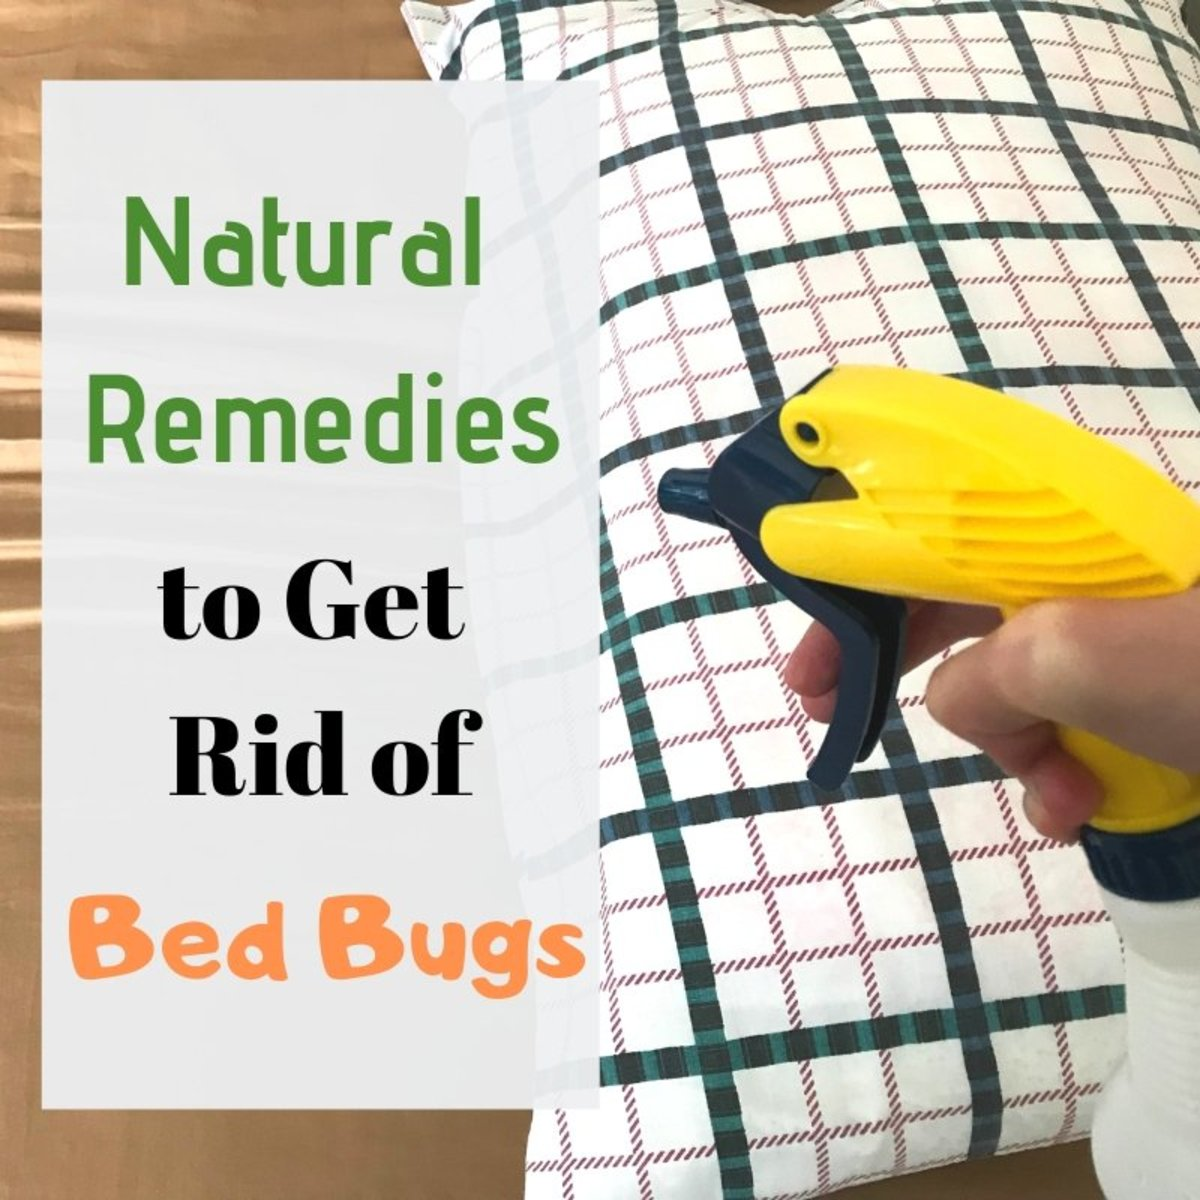 12 Home Remedies for Bed Bugs That Actually Work